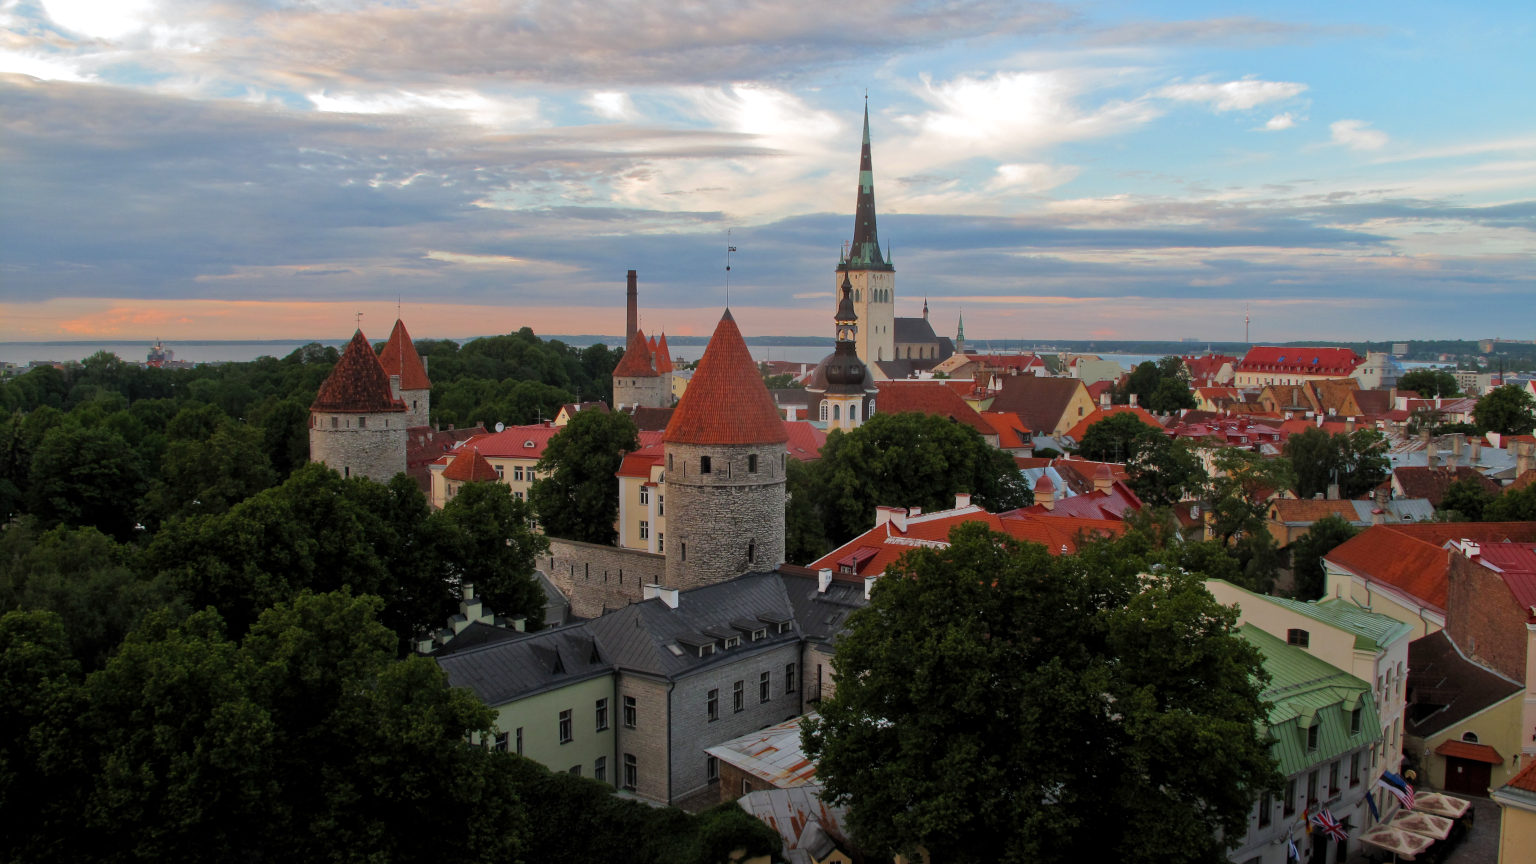 Baltics-Tallinn-Flickr-user-TausP